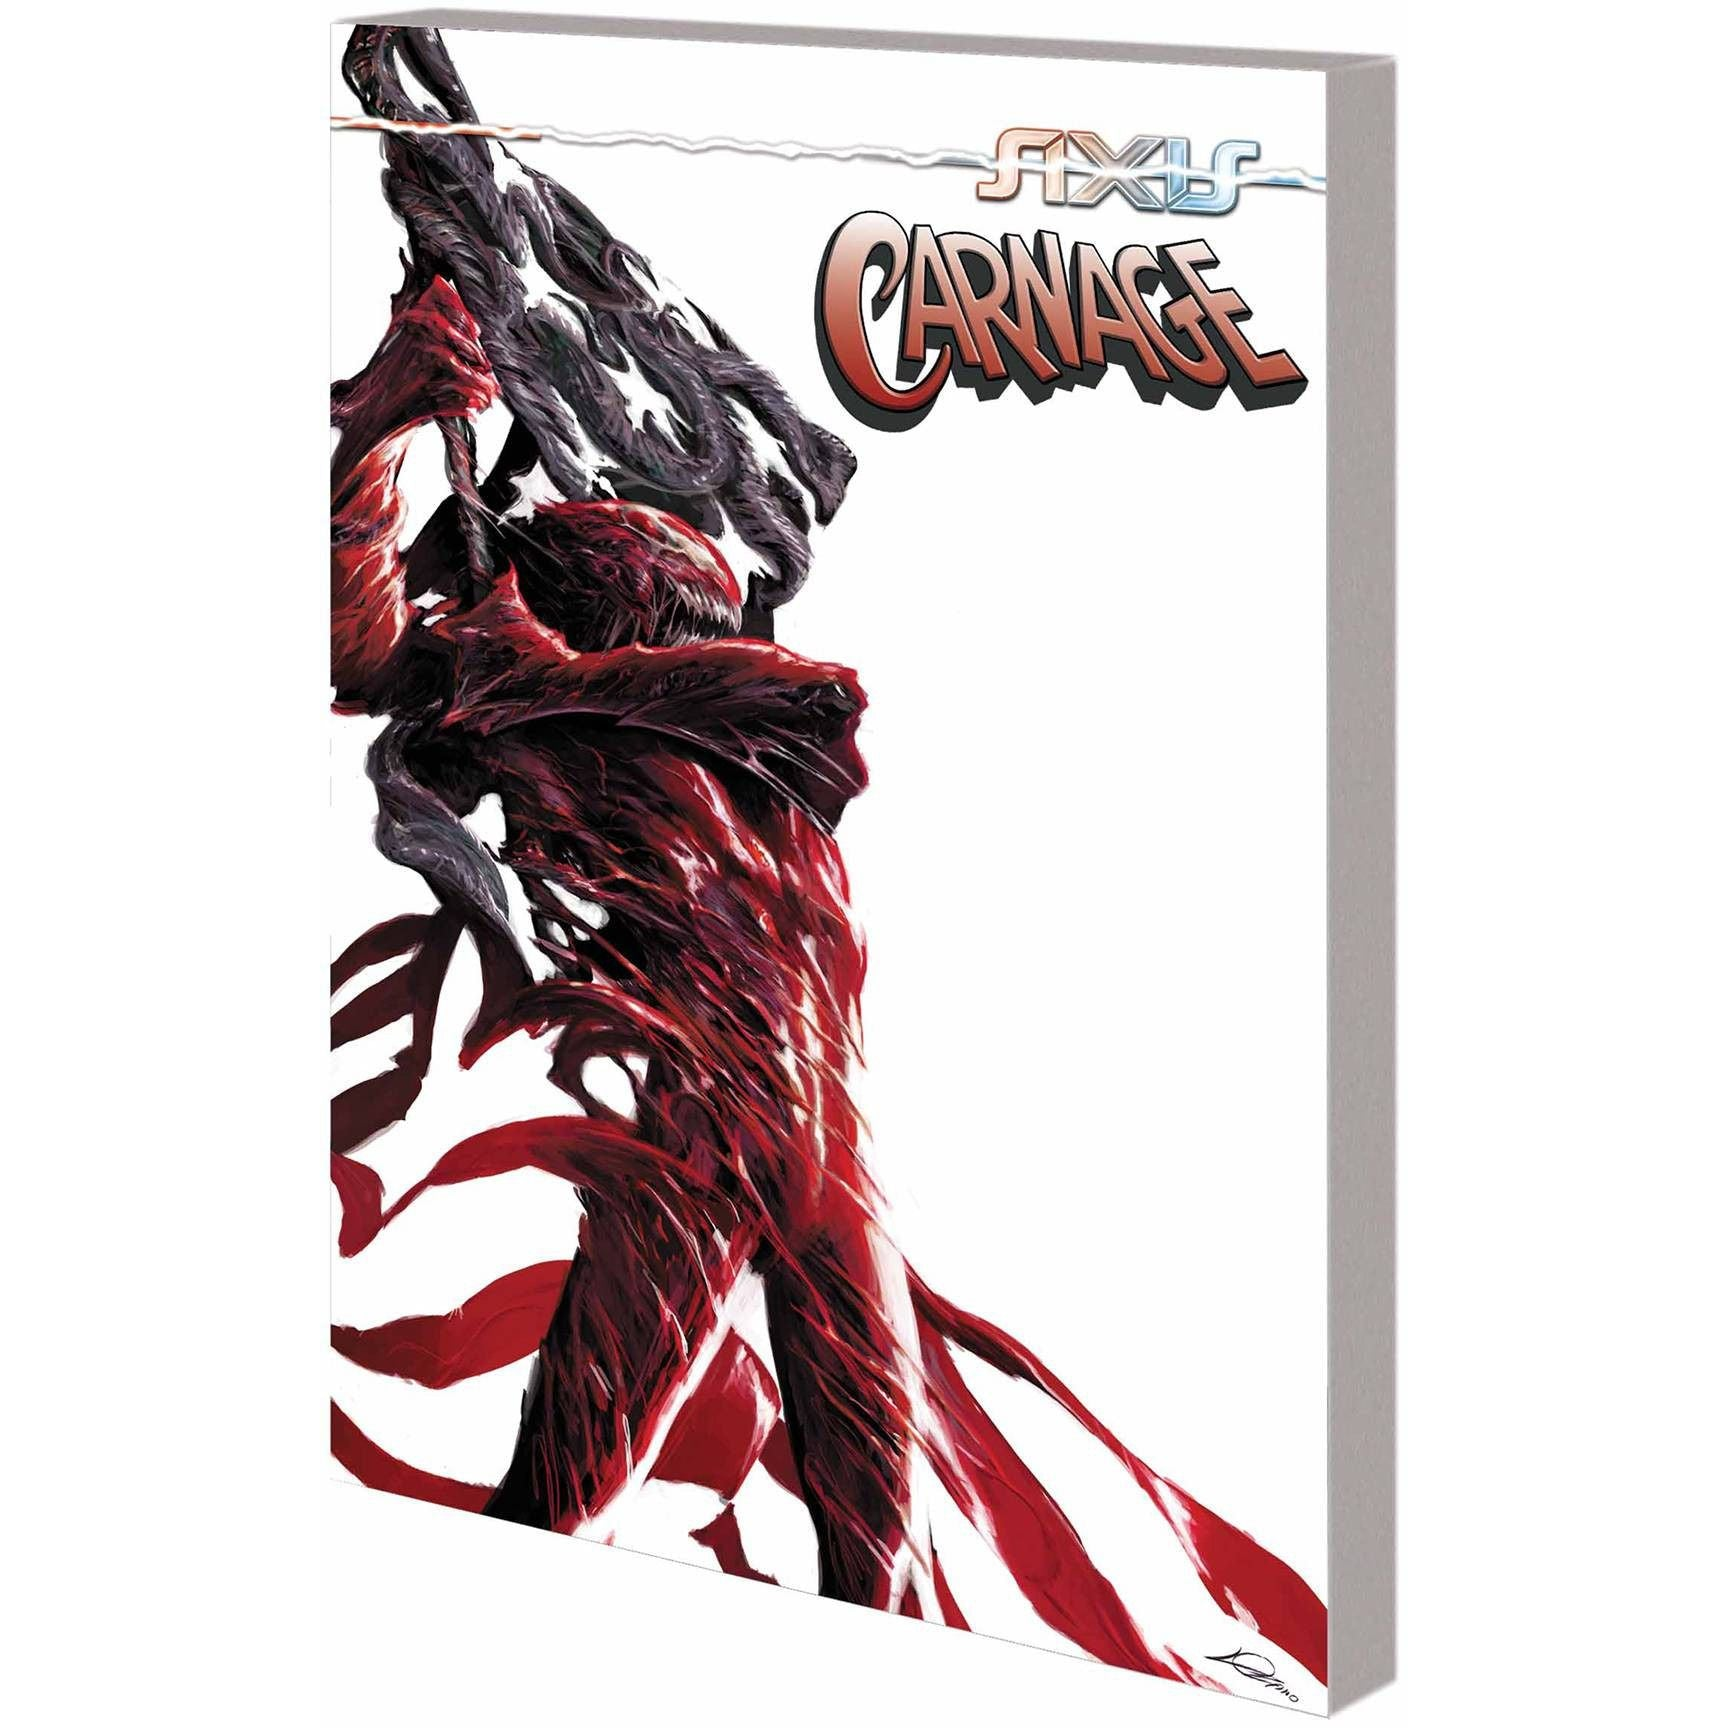 AXIS CARNAGE AND HOBGOBLIN TP Uncanny!